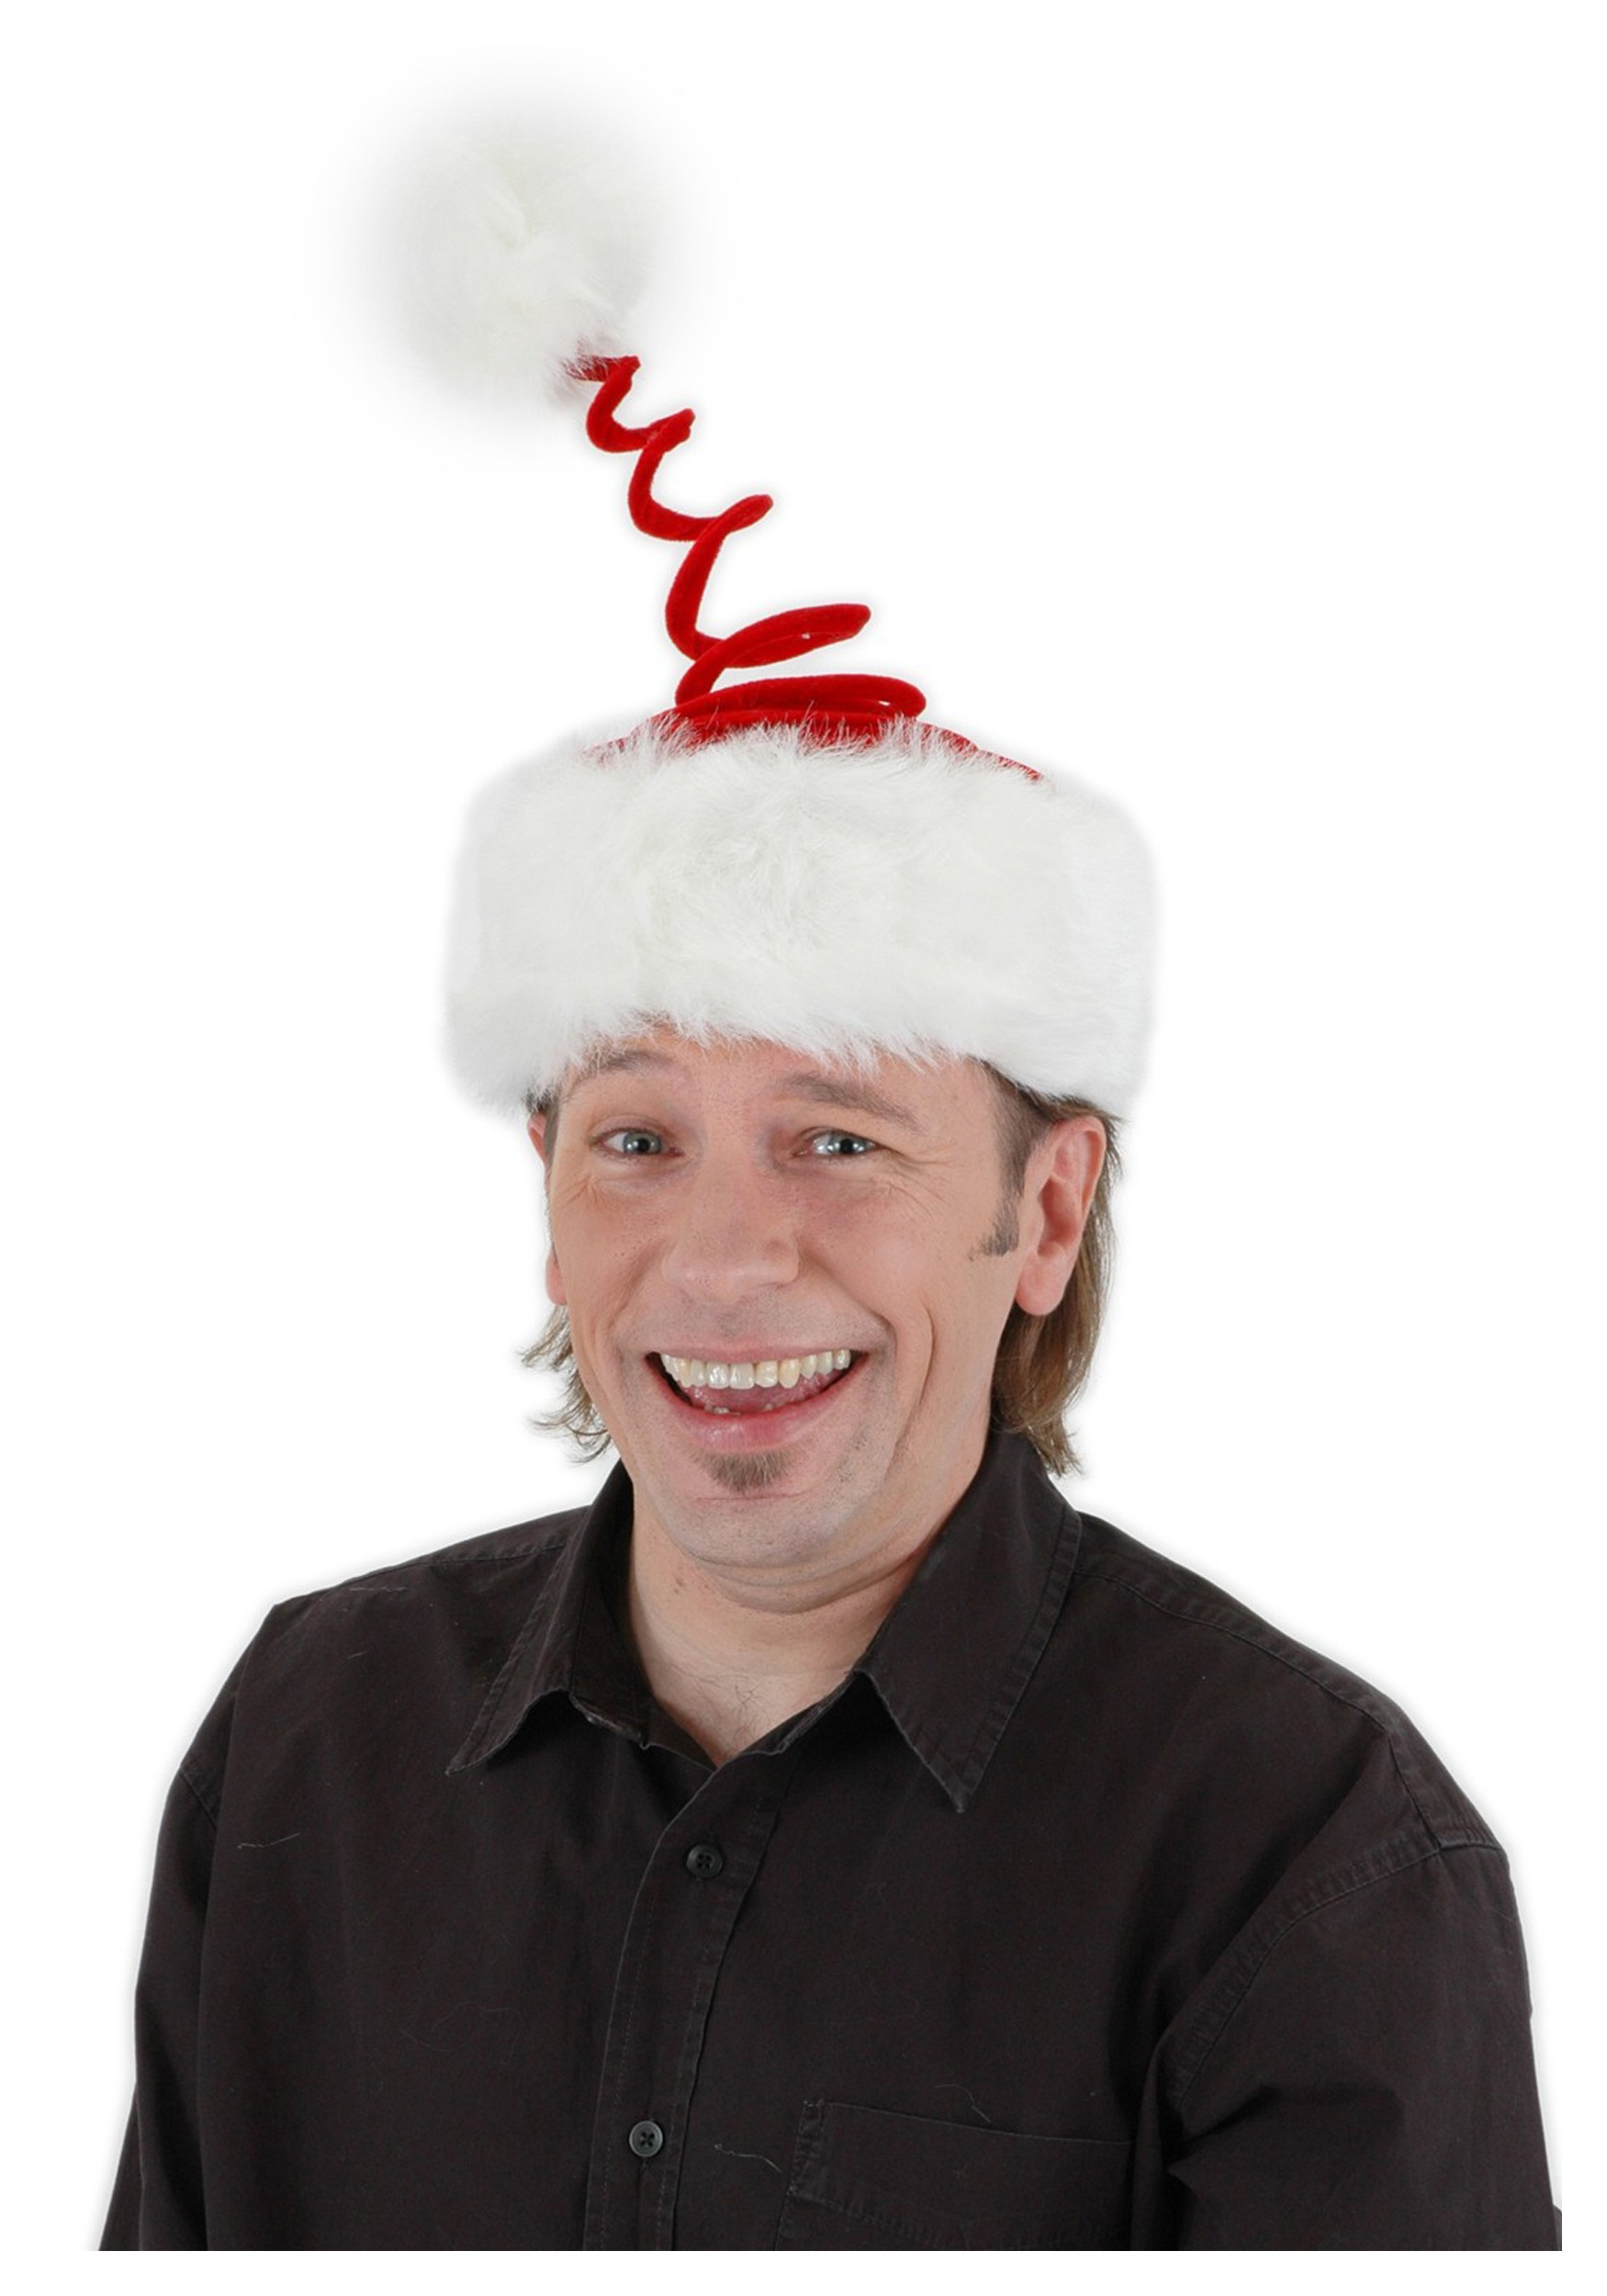 Santa hat image a clip art of red auto